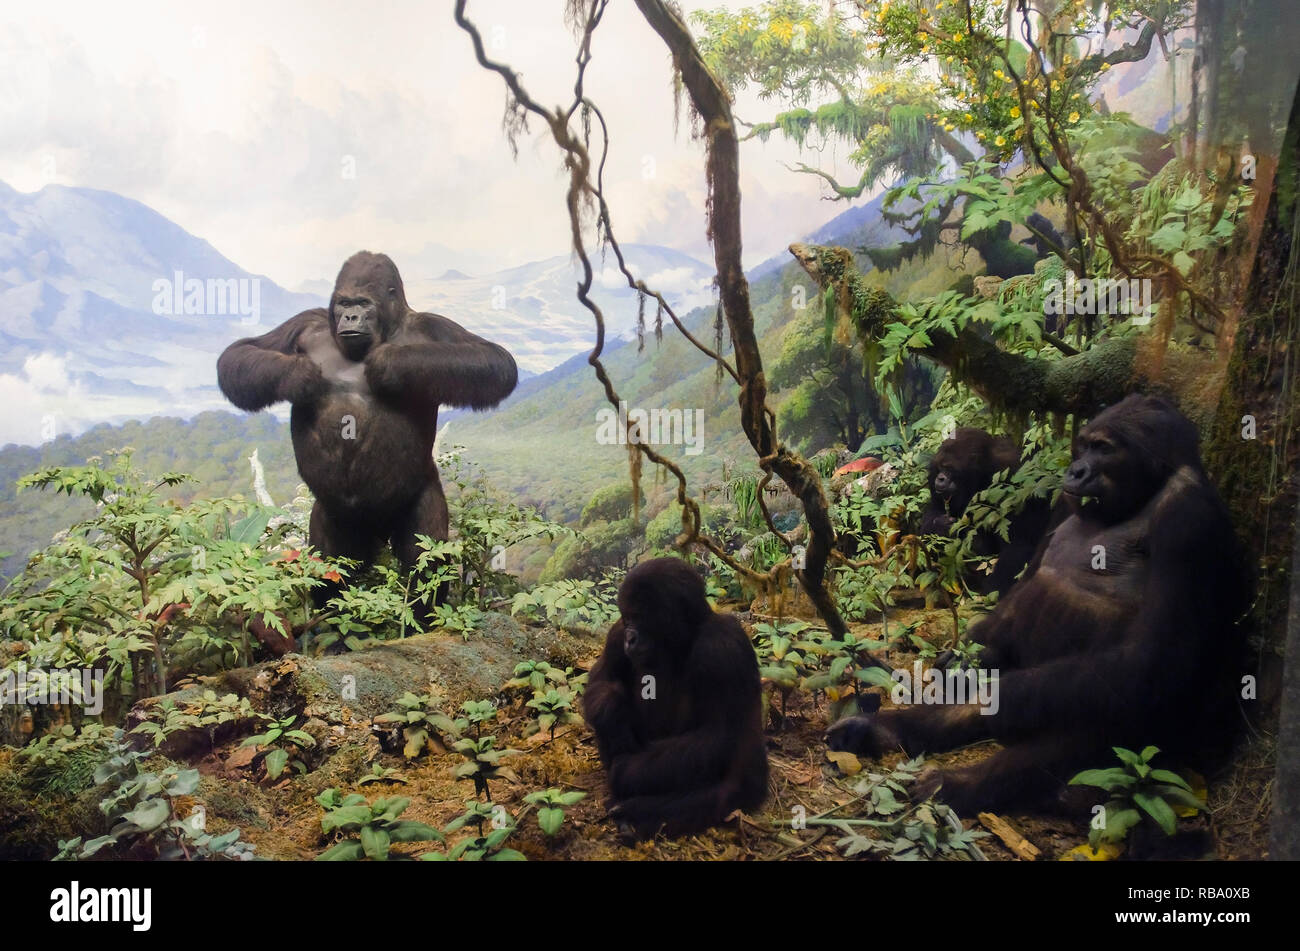 New York, New York, USA - June 20, 2011: Gorillas of Central Africa. Part of a exhibit at the American Museum of Natural History. - Stock Image